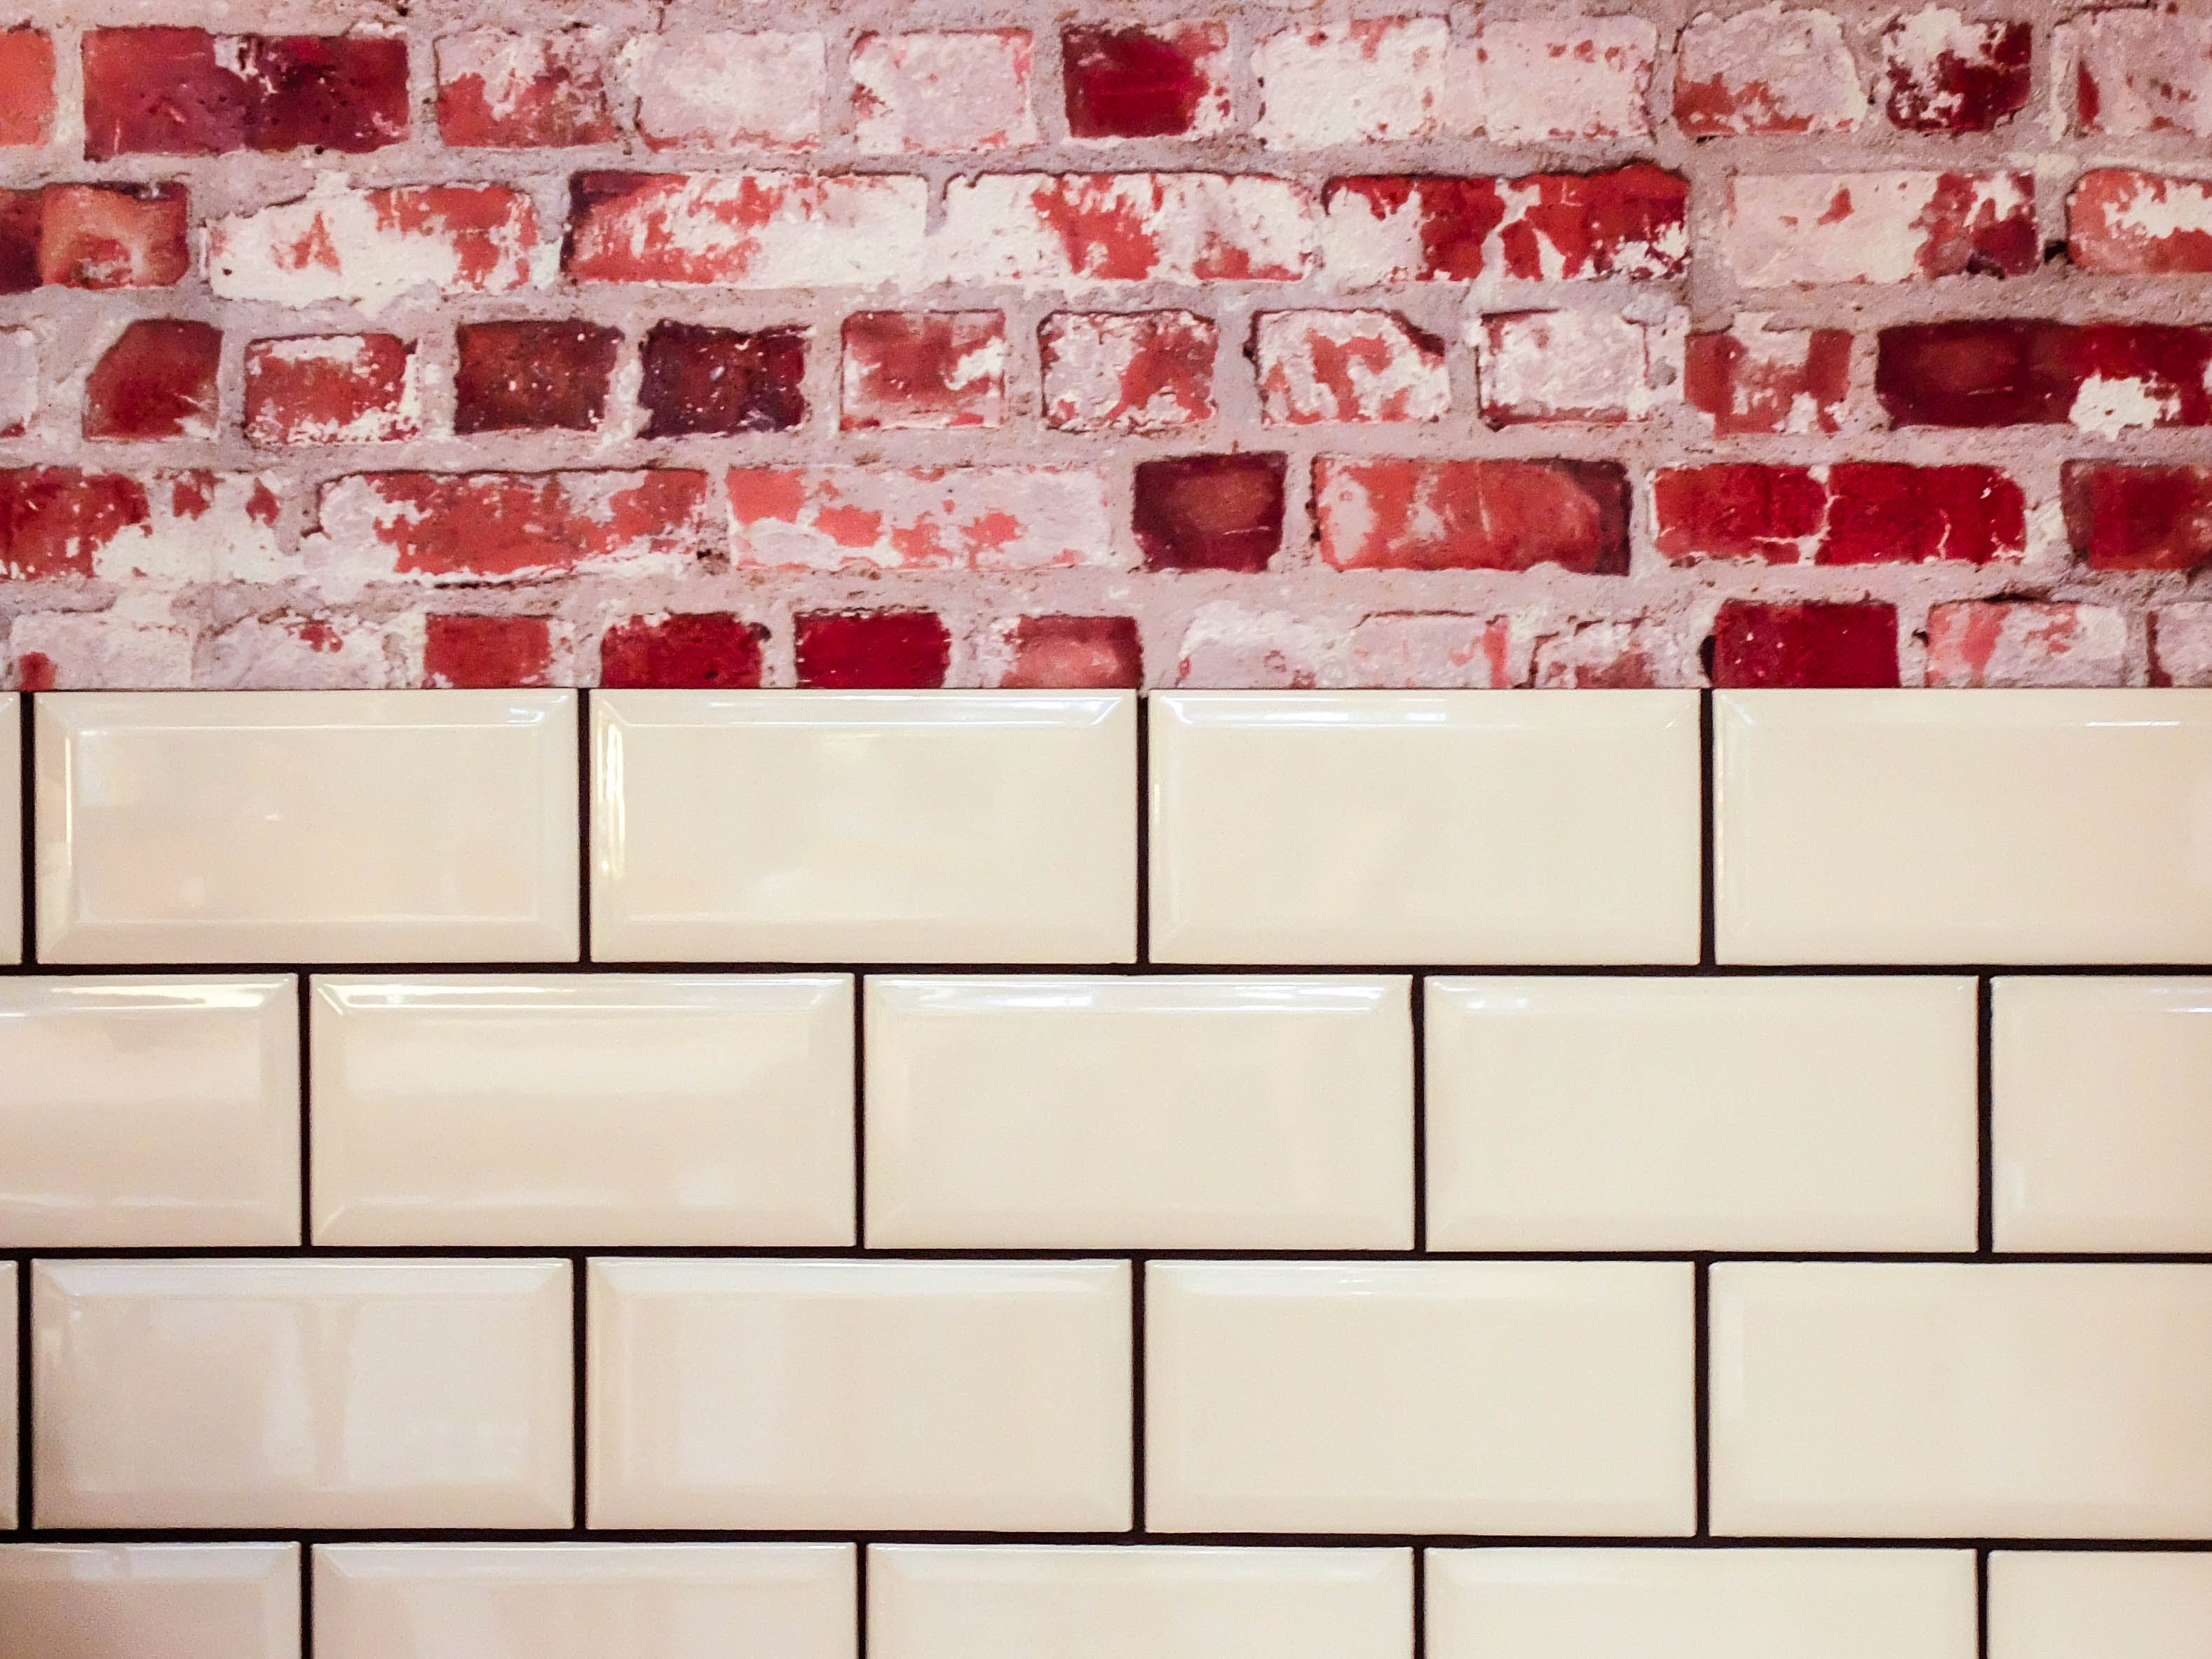 White Ceramic Wall Tile Beside Red Concrete Bricks